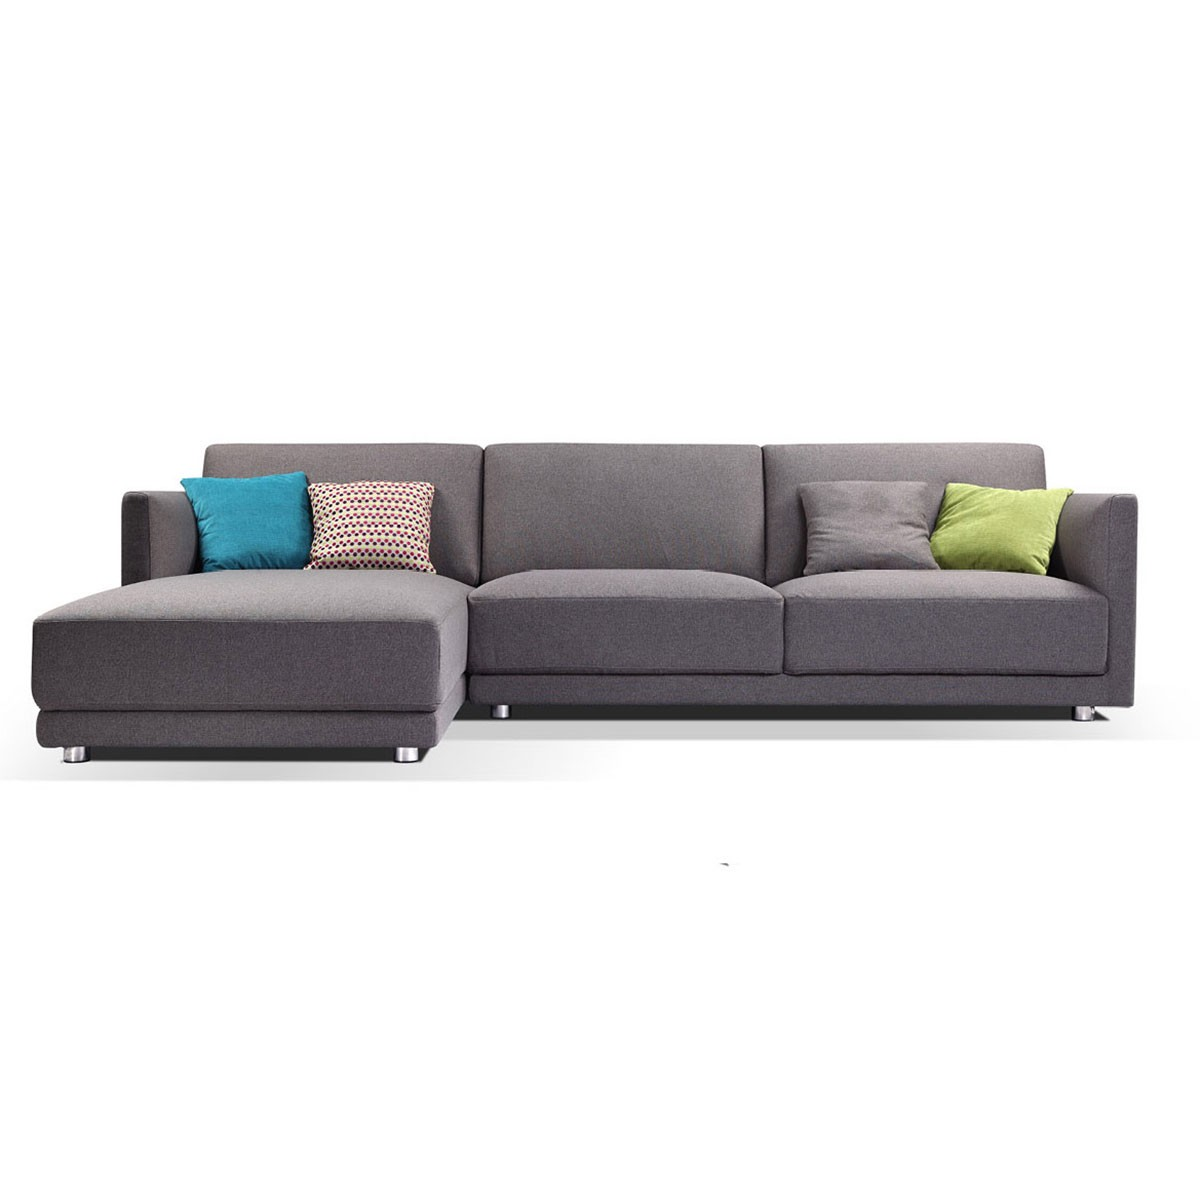 Fabric Left-facing Chaise Sectional with Pillows - Grey (BO-0637)